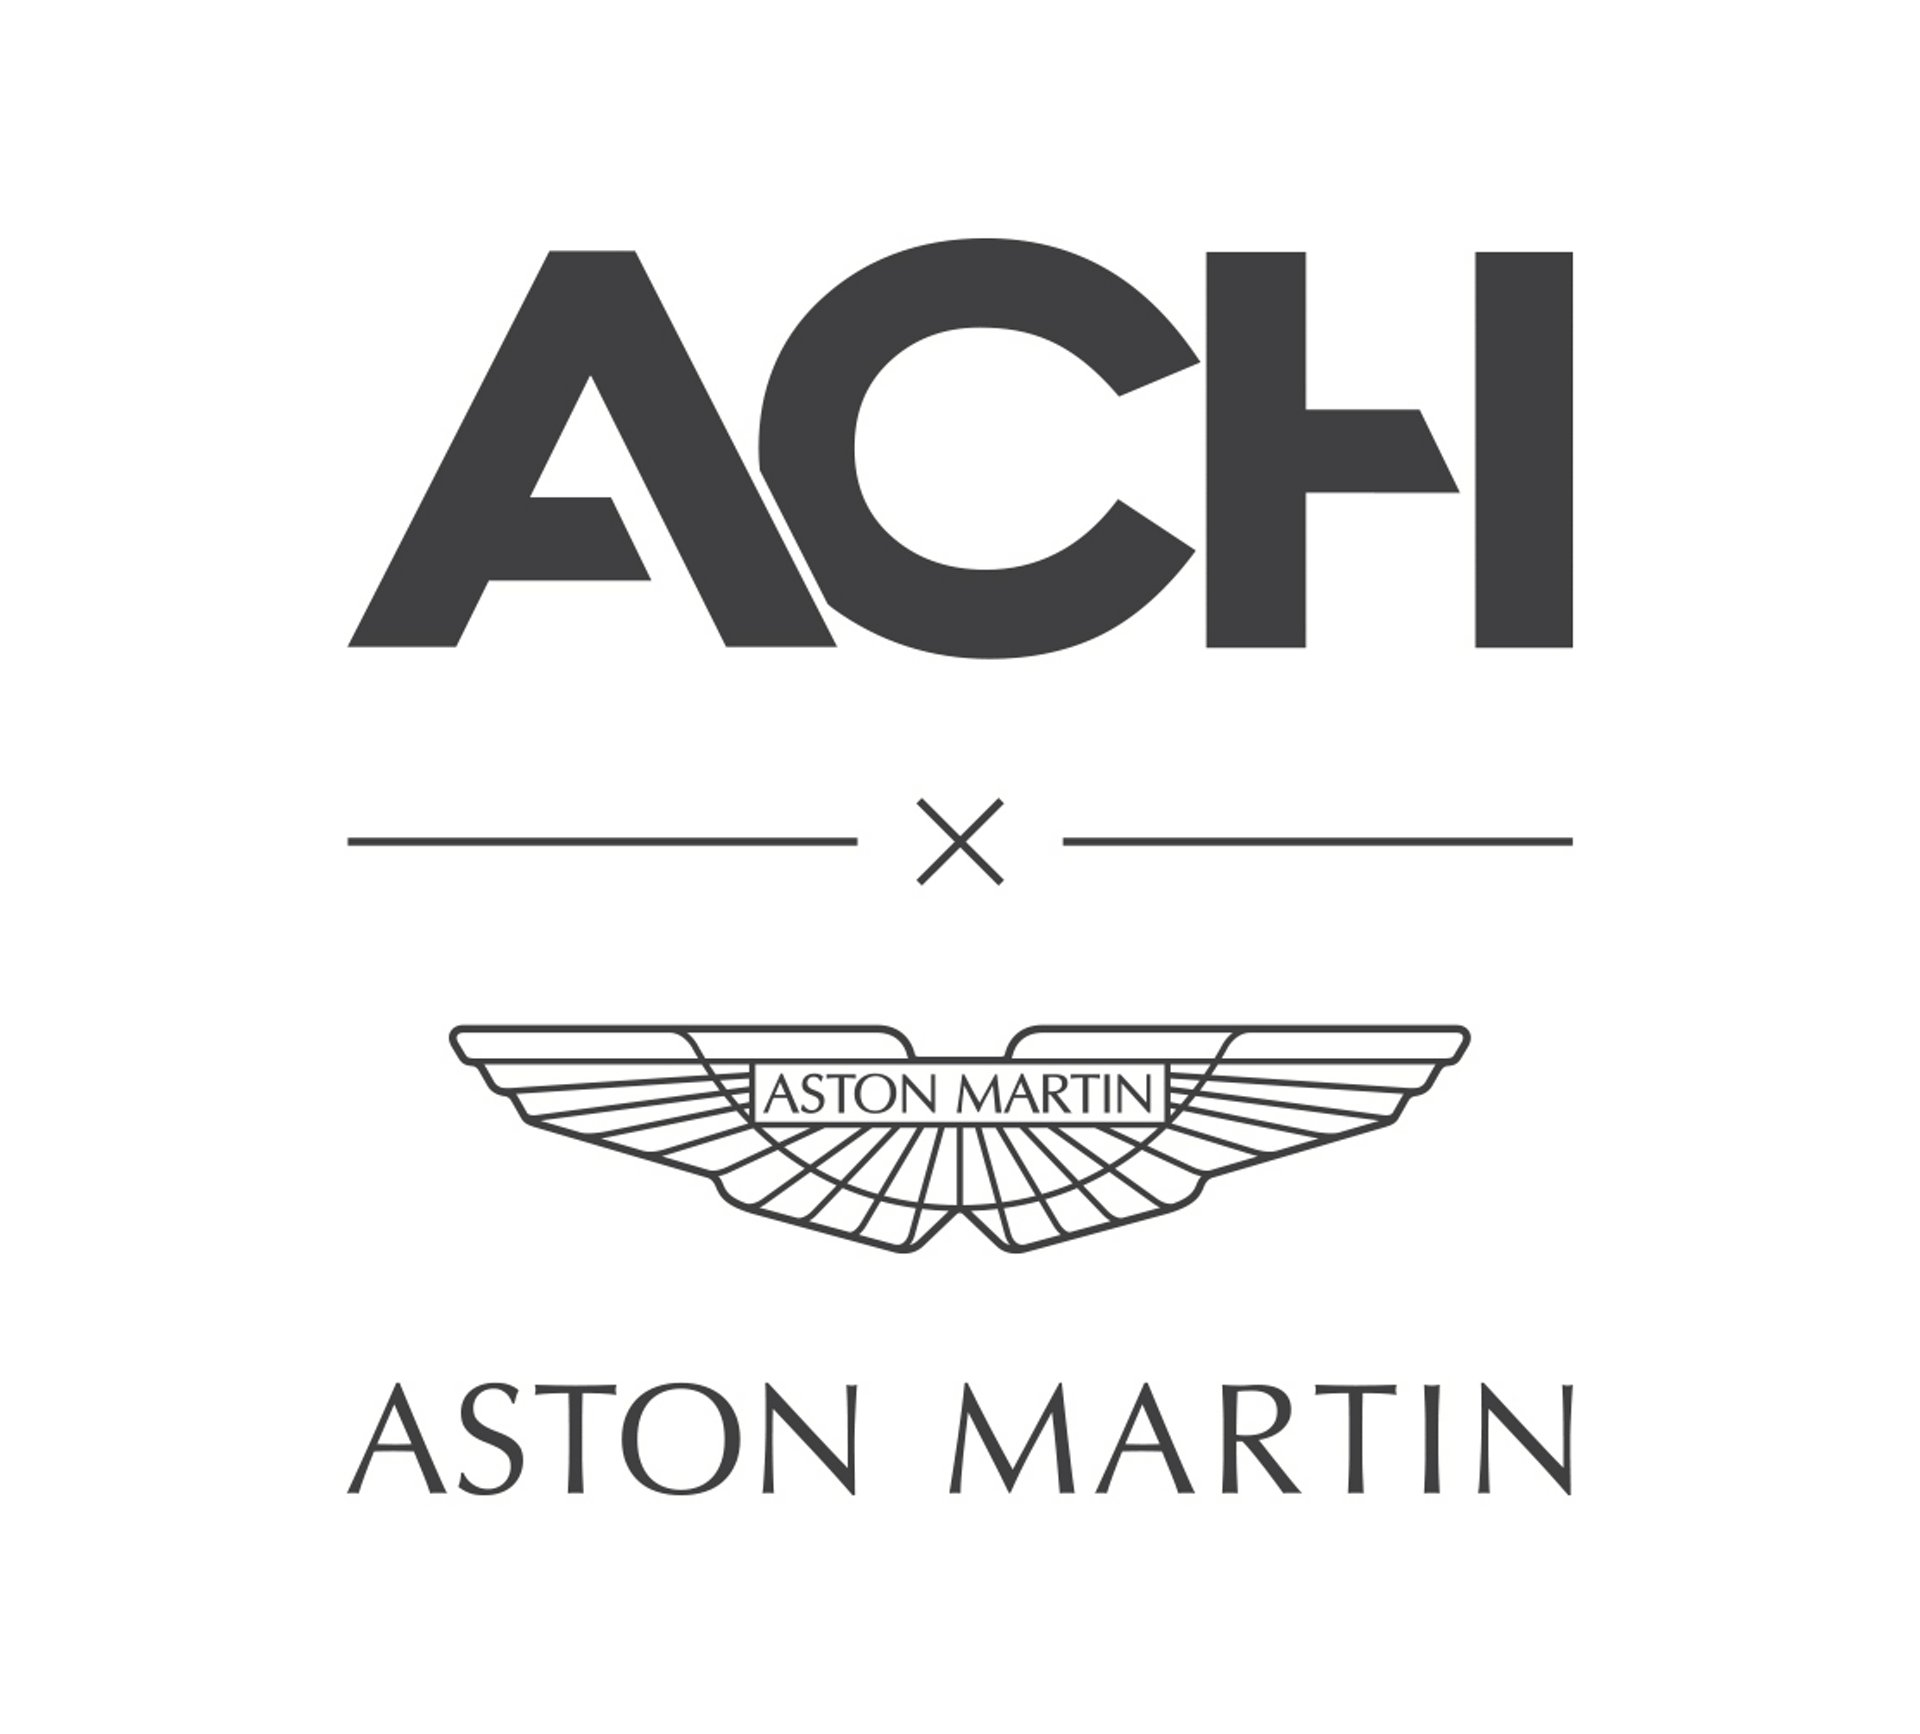 New partnership between Aston Martin and Airbus Corporate Helicopters brings together automotive and aeronautical design teams.